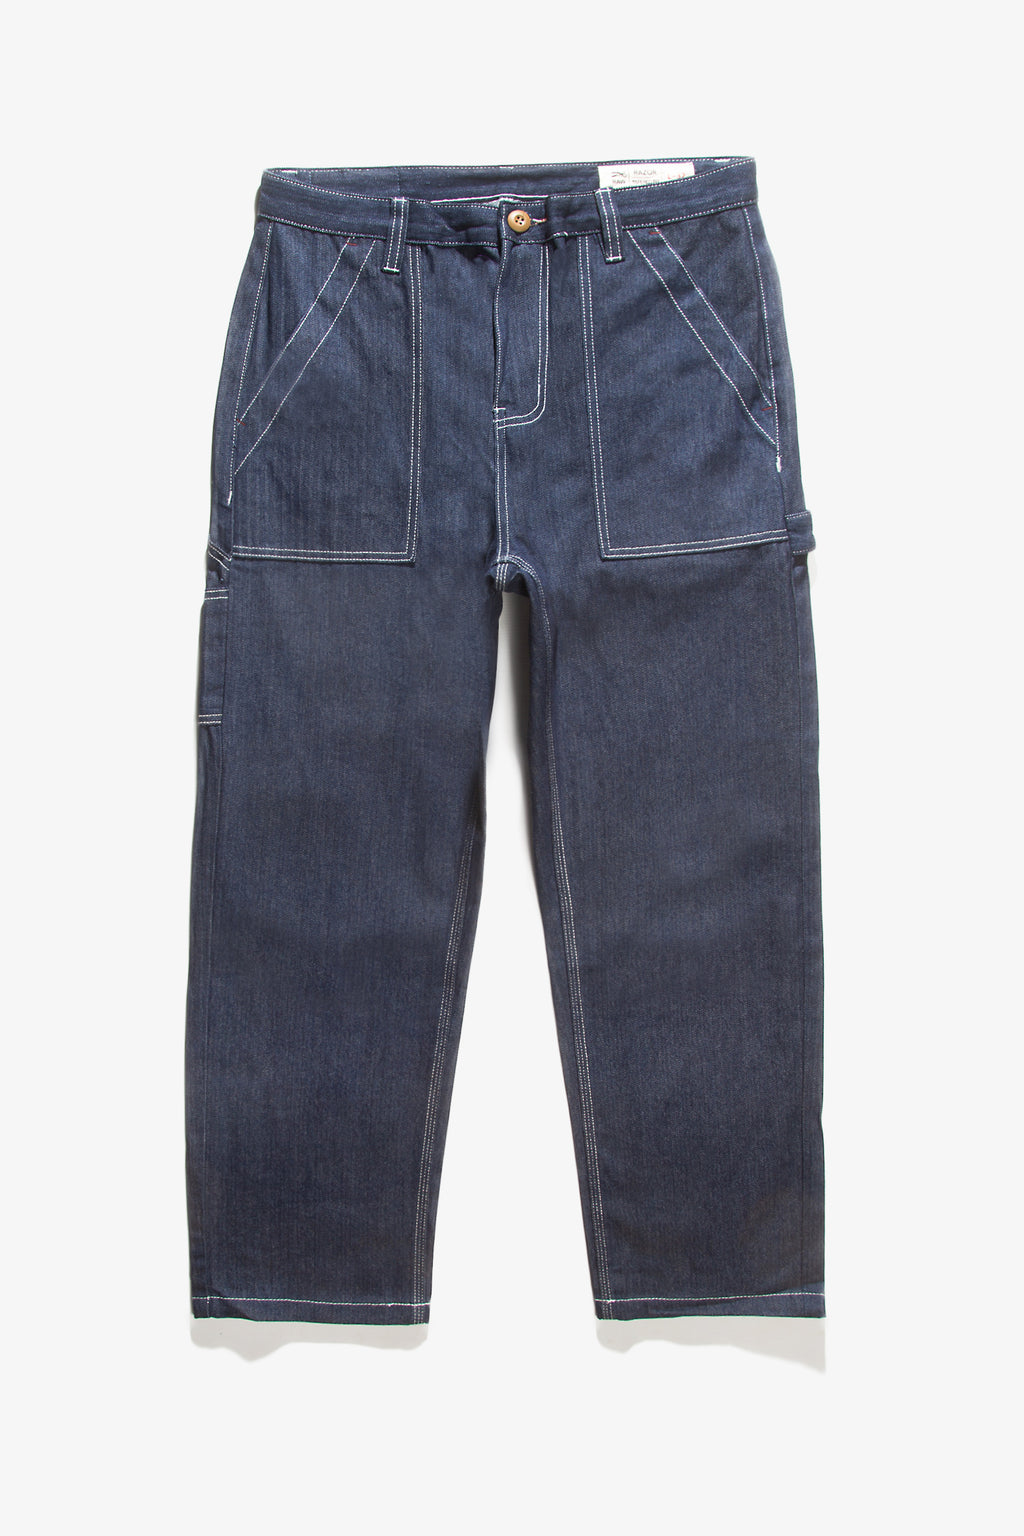 Red Ruggison - Contrast Carpenter Pants - Indigo